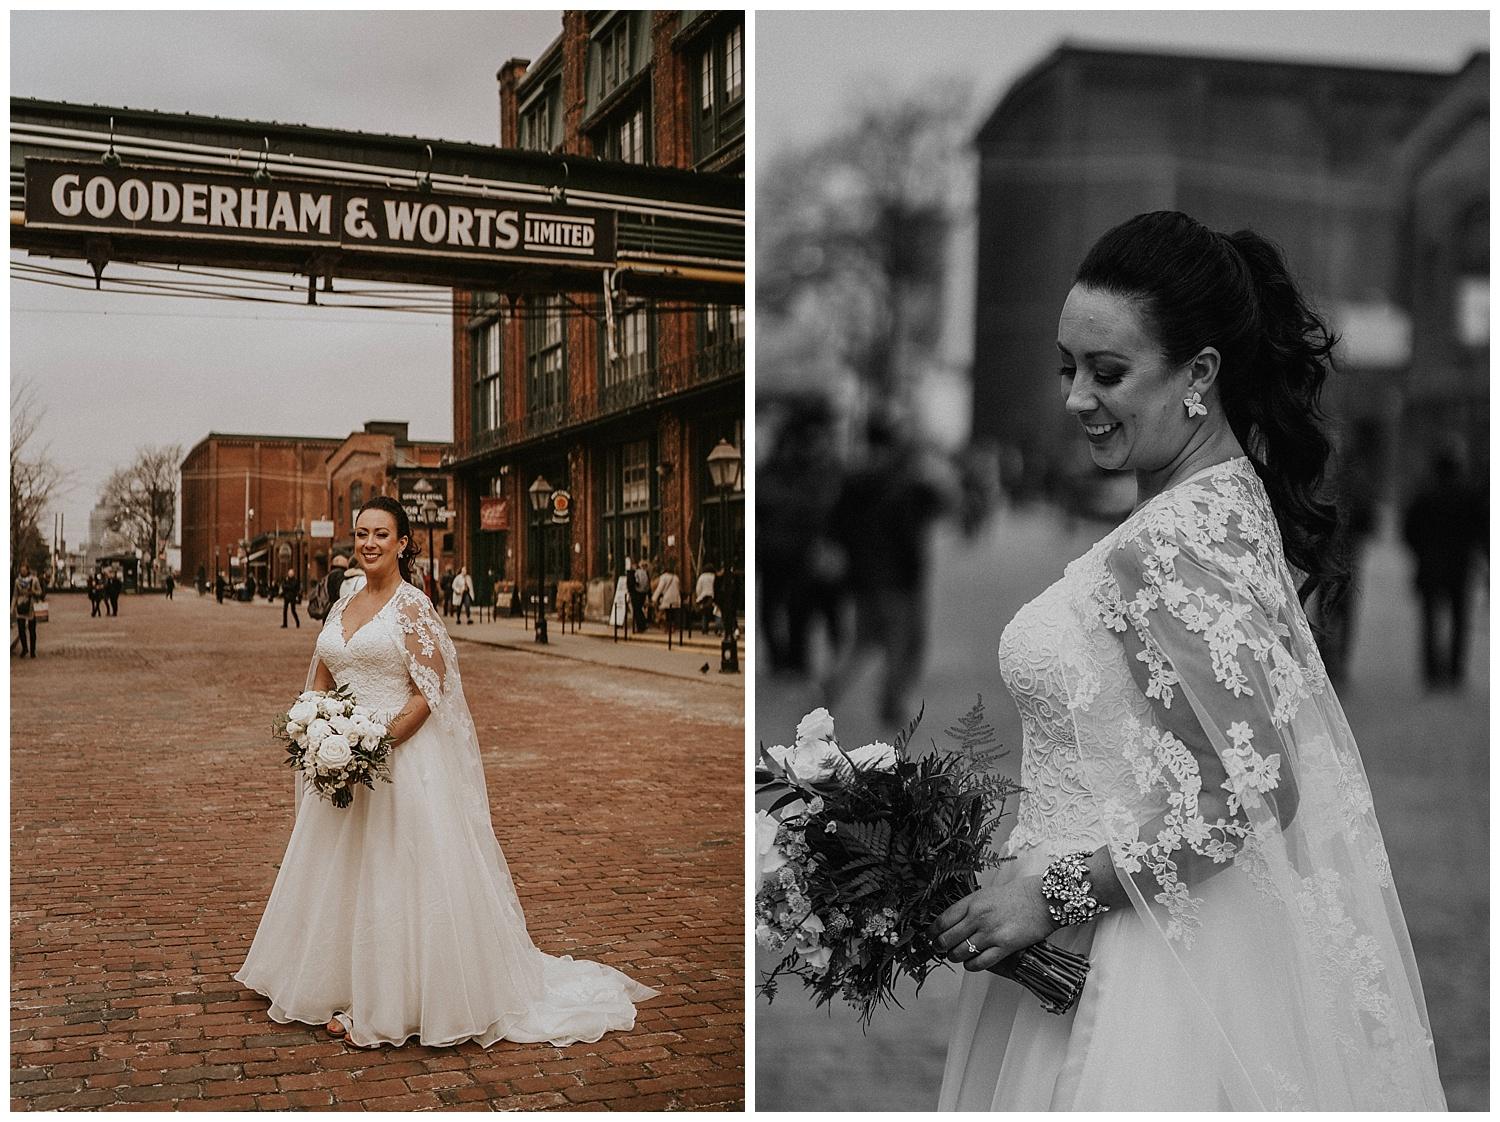 Katie Marie Photography | Archeo Wedding Arta Gallery Wedding | Distillery District Wedding | Toronto Wedding Photographer | Hamilton Toronto Ontario Wedding Photographer |_0022.jpg